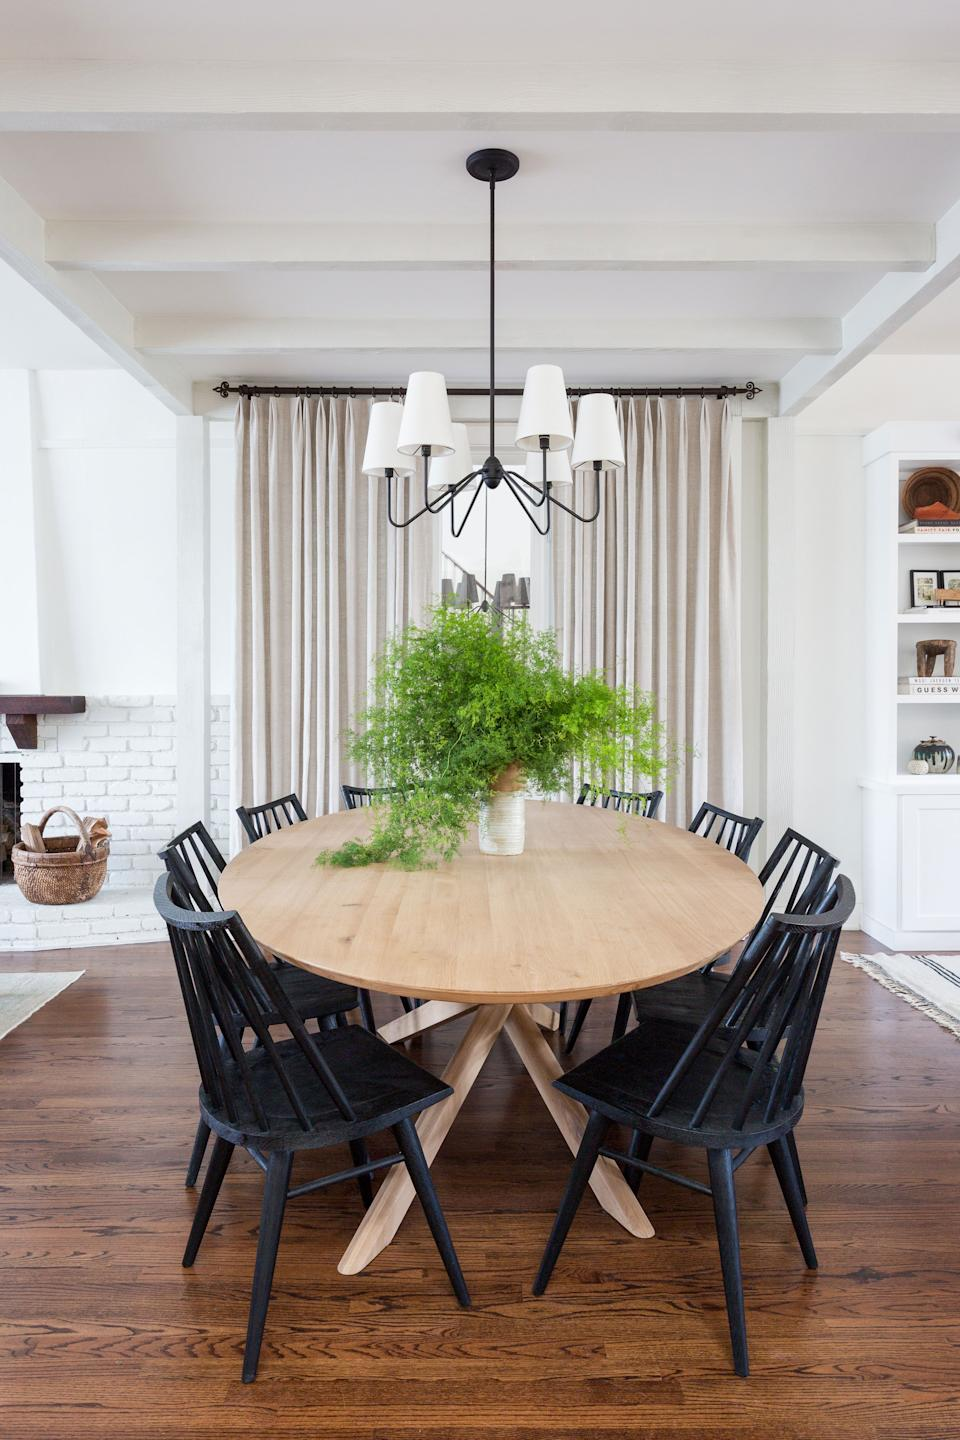 "<div class=""caption""> The actor Sam Page and his spouse, Cassidy Elliott, enlisted the help of close family friend Allie Boesch, of Allie Boesch Designs, to remake their new Pacific Palisades home. The dining room separates the family room from the more formal living room. ""You truly feel like it's the axis of the house when you're sitting at the table,"" says Page. The large table is from <a href=""https://www.ethnicraft.com/"" rel=""nofollow noopener"" target=""_blank"" data-ylk=""slk:Ethnicraft"" class=""link rapid-noclick-resp"">Ethnicraft</a>, with chairs from <a href=""https://www.mcgeeandco.com/"" rel=""nofollow noopener"" target=""_blank"" data-ylk=""slk:McGee & Co"" class=""link rapid-noclick-resp"">McGee & Co</a>. The pendant overhead is from <a href=""https://www.rejuvenation.com/"" rel=""nofollow noopener"" target=""_blank"" data-ylk=""slk:Rejuvenation"" class=""link rapid-noclick-resp"">Rejuvenation</a>. </div>"